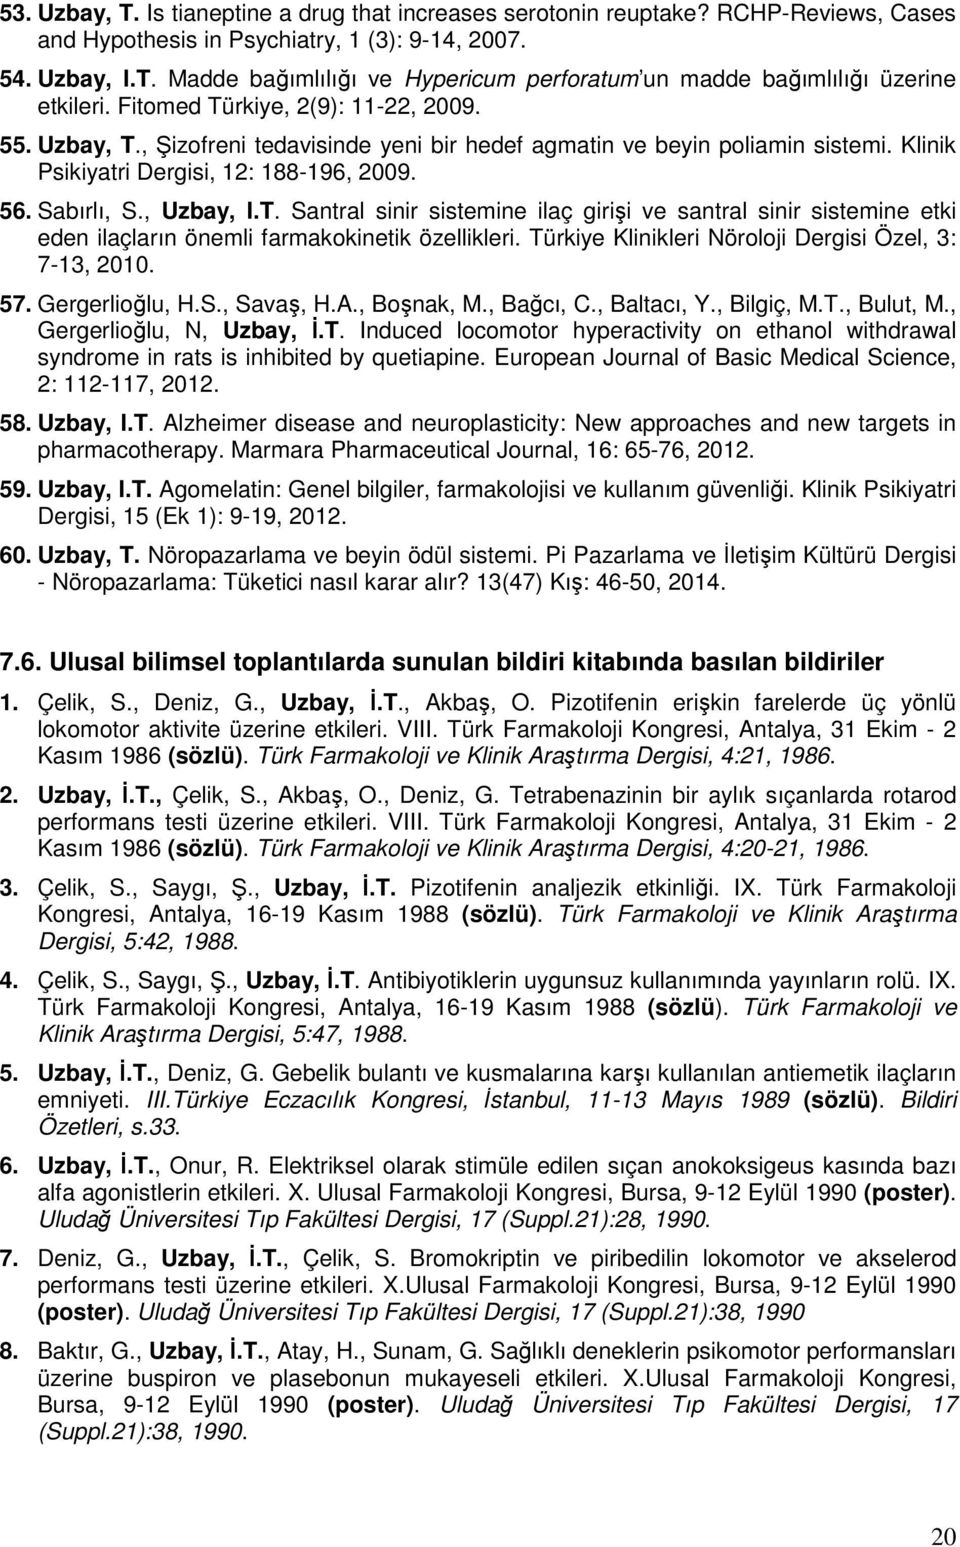 Türkiye Klinikleri Nöroloji Dergisi Özel, 3: 7-13, 2010. 57. Gergerlioğlu, H.S., Savaş, H.A., Boşnak, M., Bağcı, C., Baltacı, Y., Bilgiç, M.T., Bulut, M., Gergerlioğlu, N, Uzbay, İ.T. Induced locomotor hyperactivity on ethanol withdrawal syndrome in rats is inhibited by quetiapine.